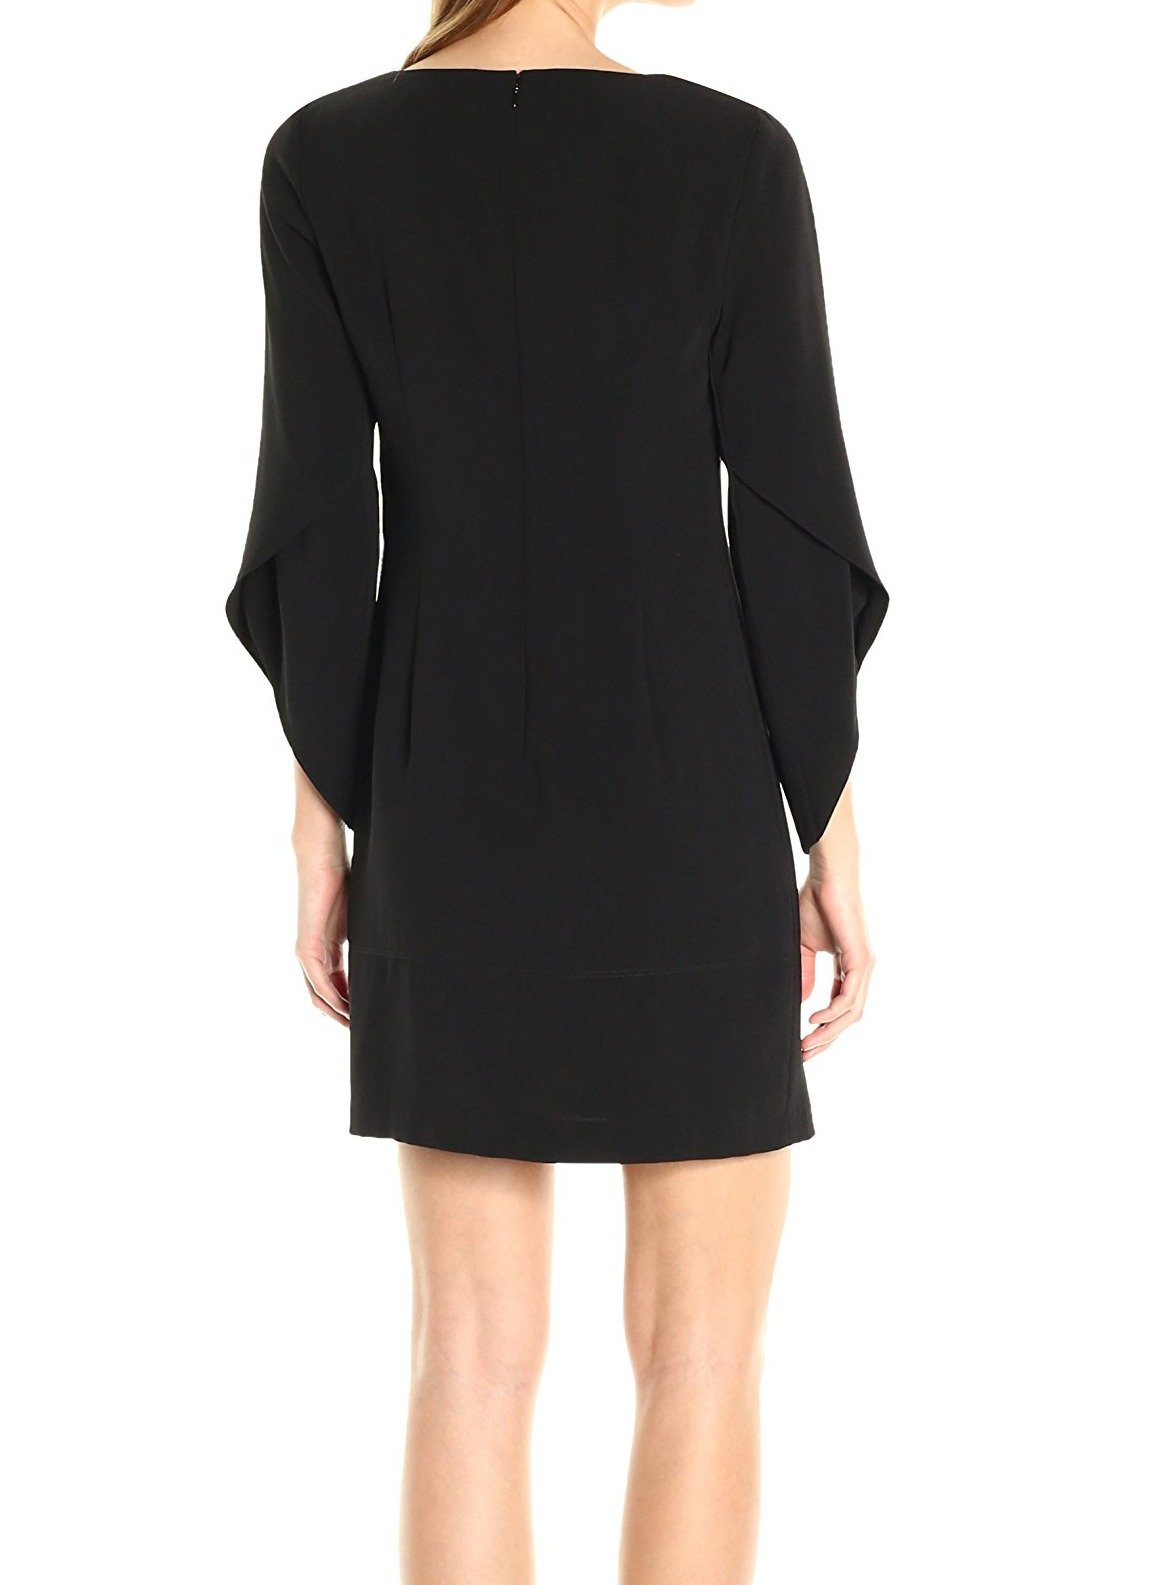 Laundry by Shelli Segal Women's Tulip Sleeve Crepe T Body, Black, 10 by Laundry by Shelli Segal (Image #2)